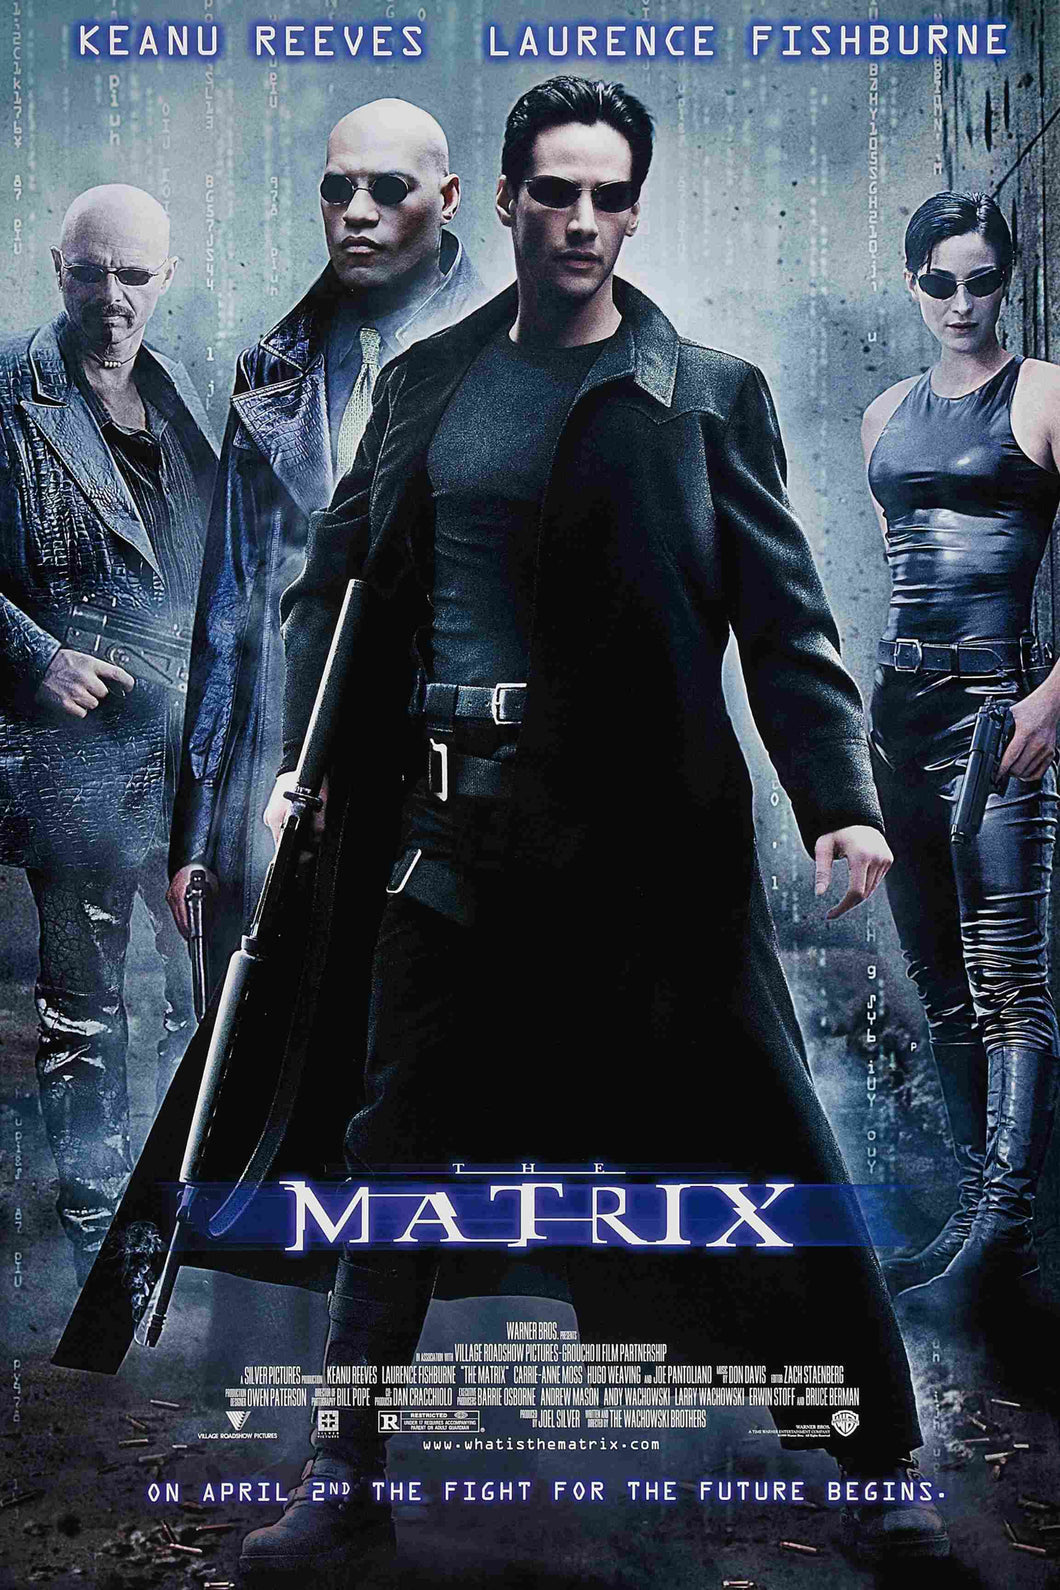 The Matrix Poster - egoamo.co.za